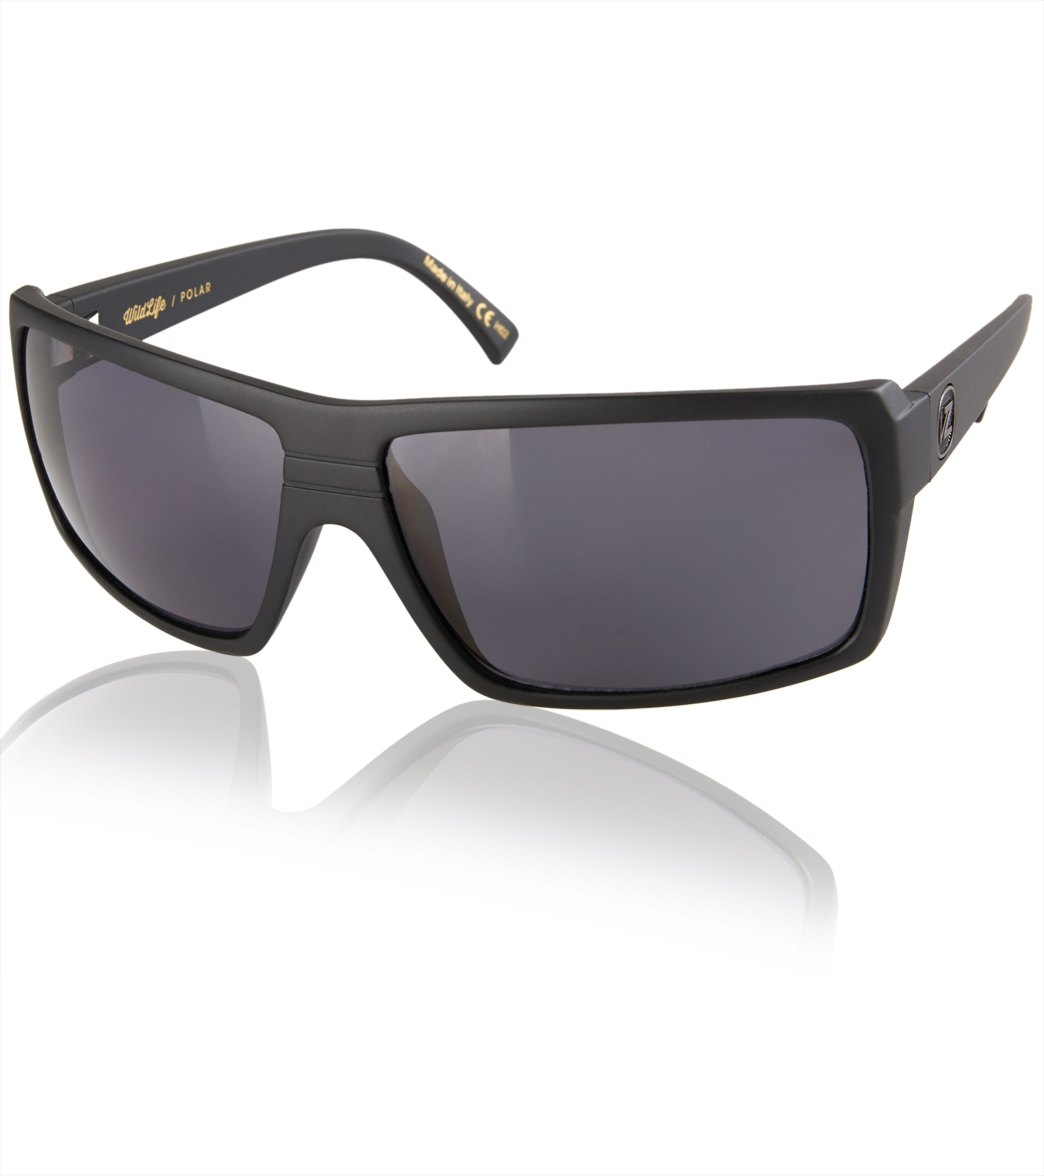 55dadac2ff Von Zipper Snark Polarized Sunglasses at SwimOutlet.com - Free ...